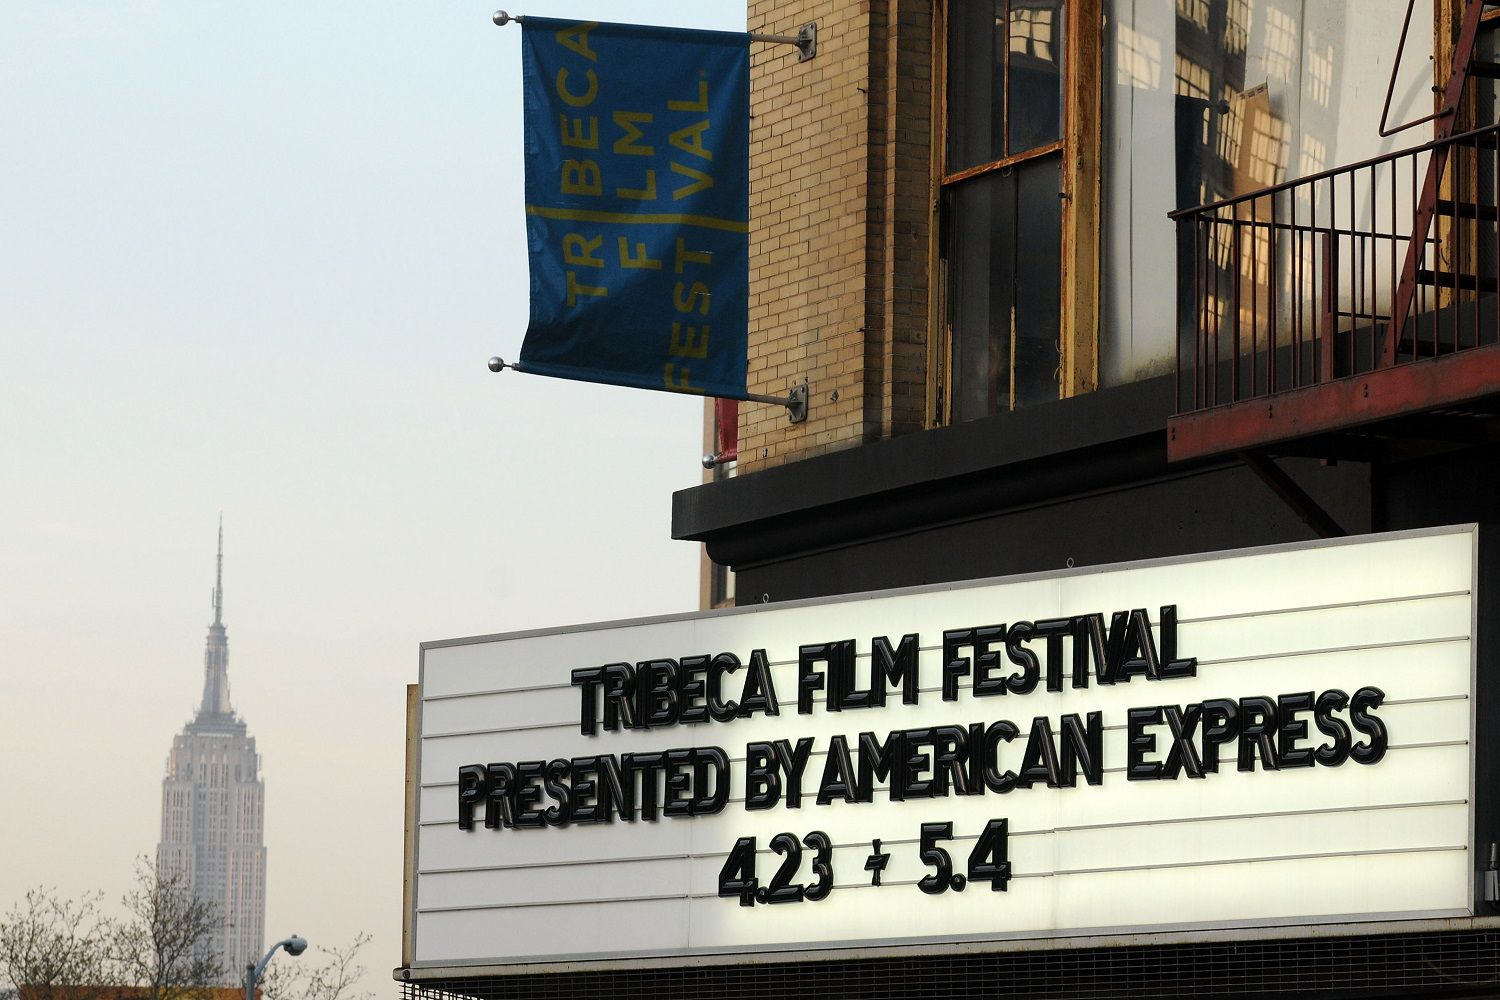 2014 Tribeca Film Festival - X/Y Photos and Images